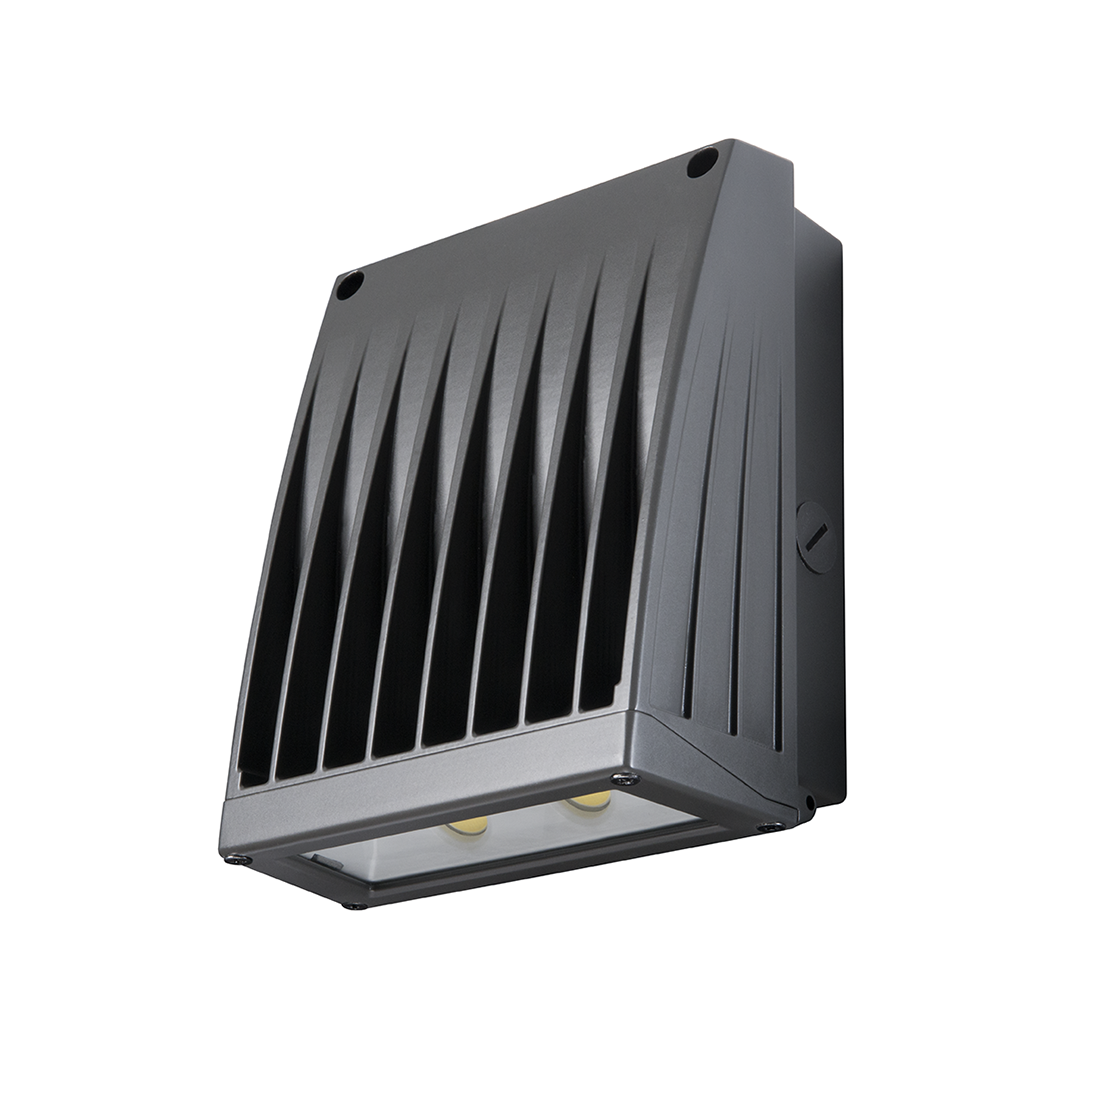 Details about atlas lighting wsps40led 40 watt led slimpak pro wall light 4500k